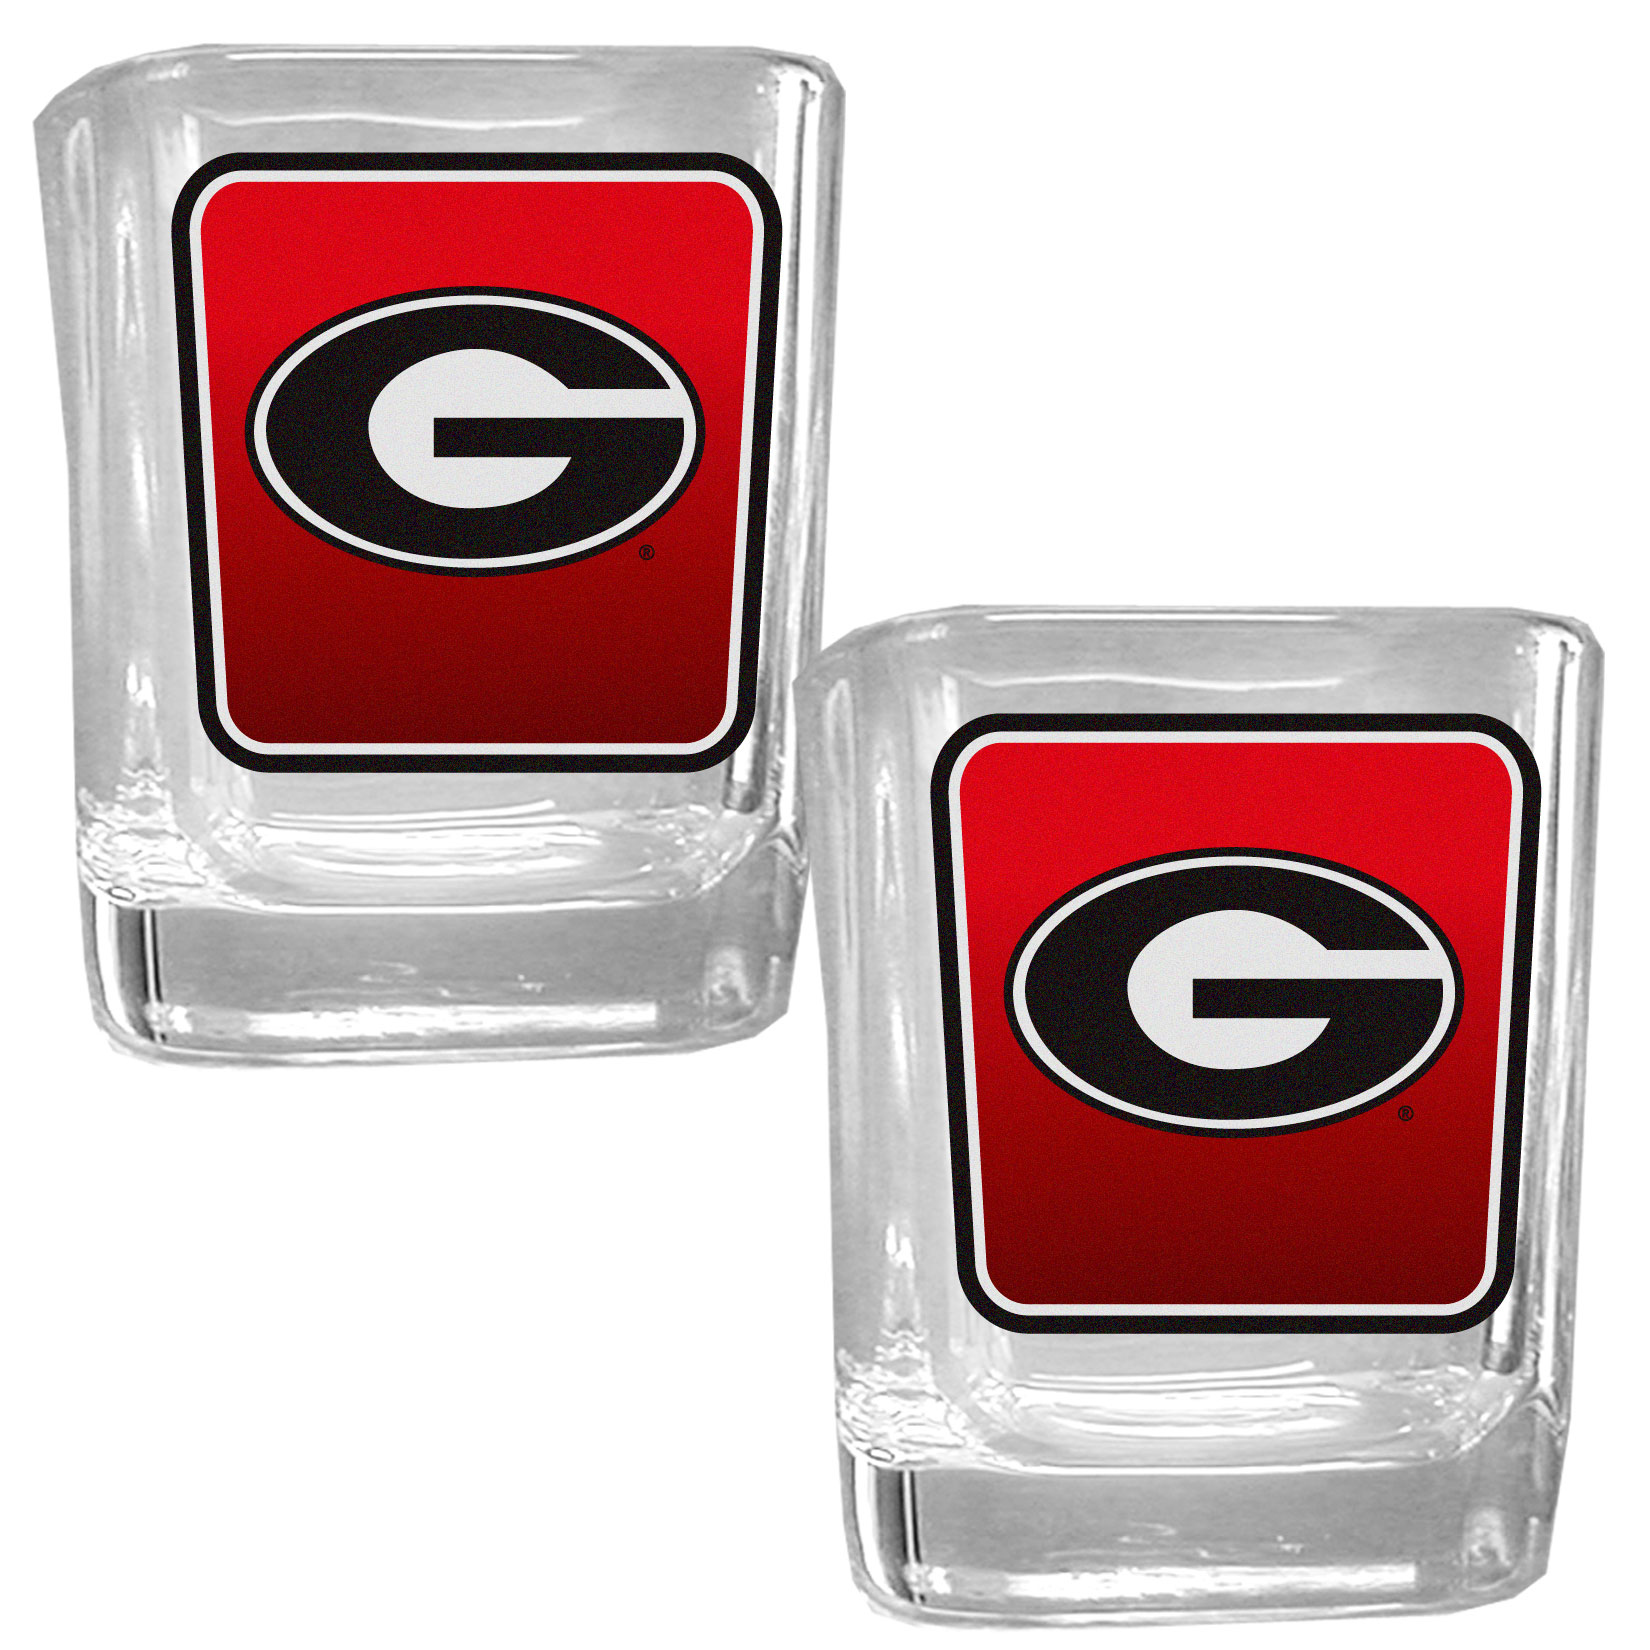 Georgia Bulldogs Square Glass Shot Glass Set - Our glass shot glasses are perfect for collectors or any game day event. The 2 ounce glasses feature bright, vidid digital Georgia Bulldogs graphics. Comes in a set of 2.